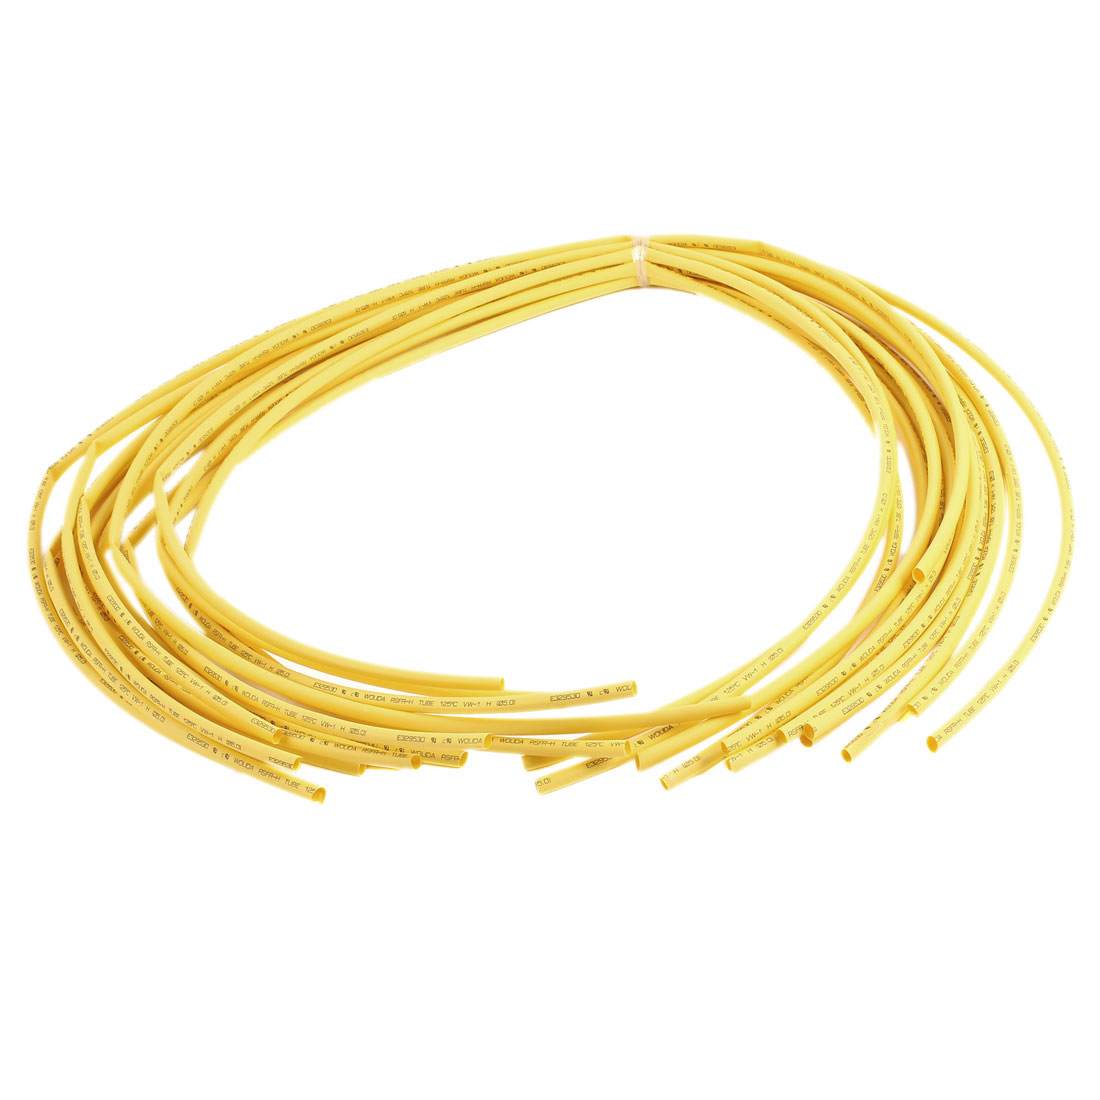 3.3Ft 5mm Dia Ratio 2:1 Heat Shrinking Shrinkable Tube Tubing Yellow 14 Pcs